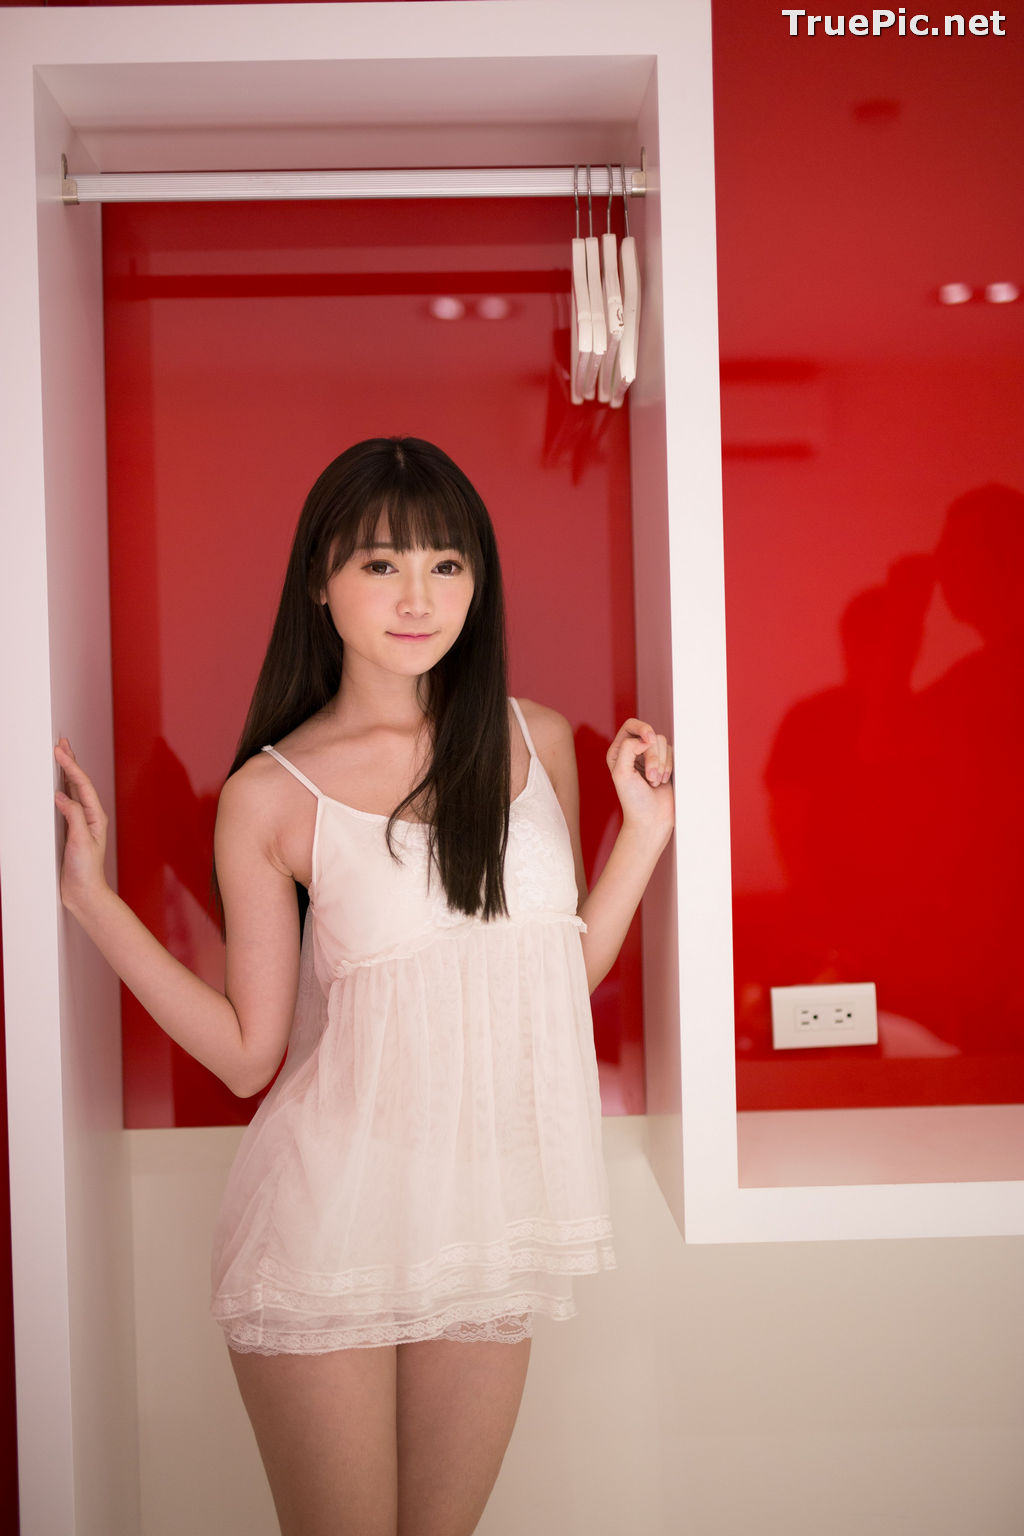 Image Taiwanese Hot Model - Sexy Kendo Girl - TruePic.net - Picture-72